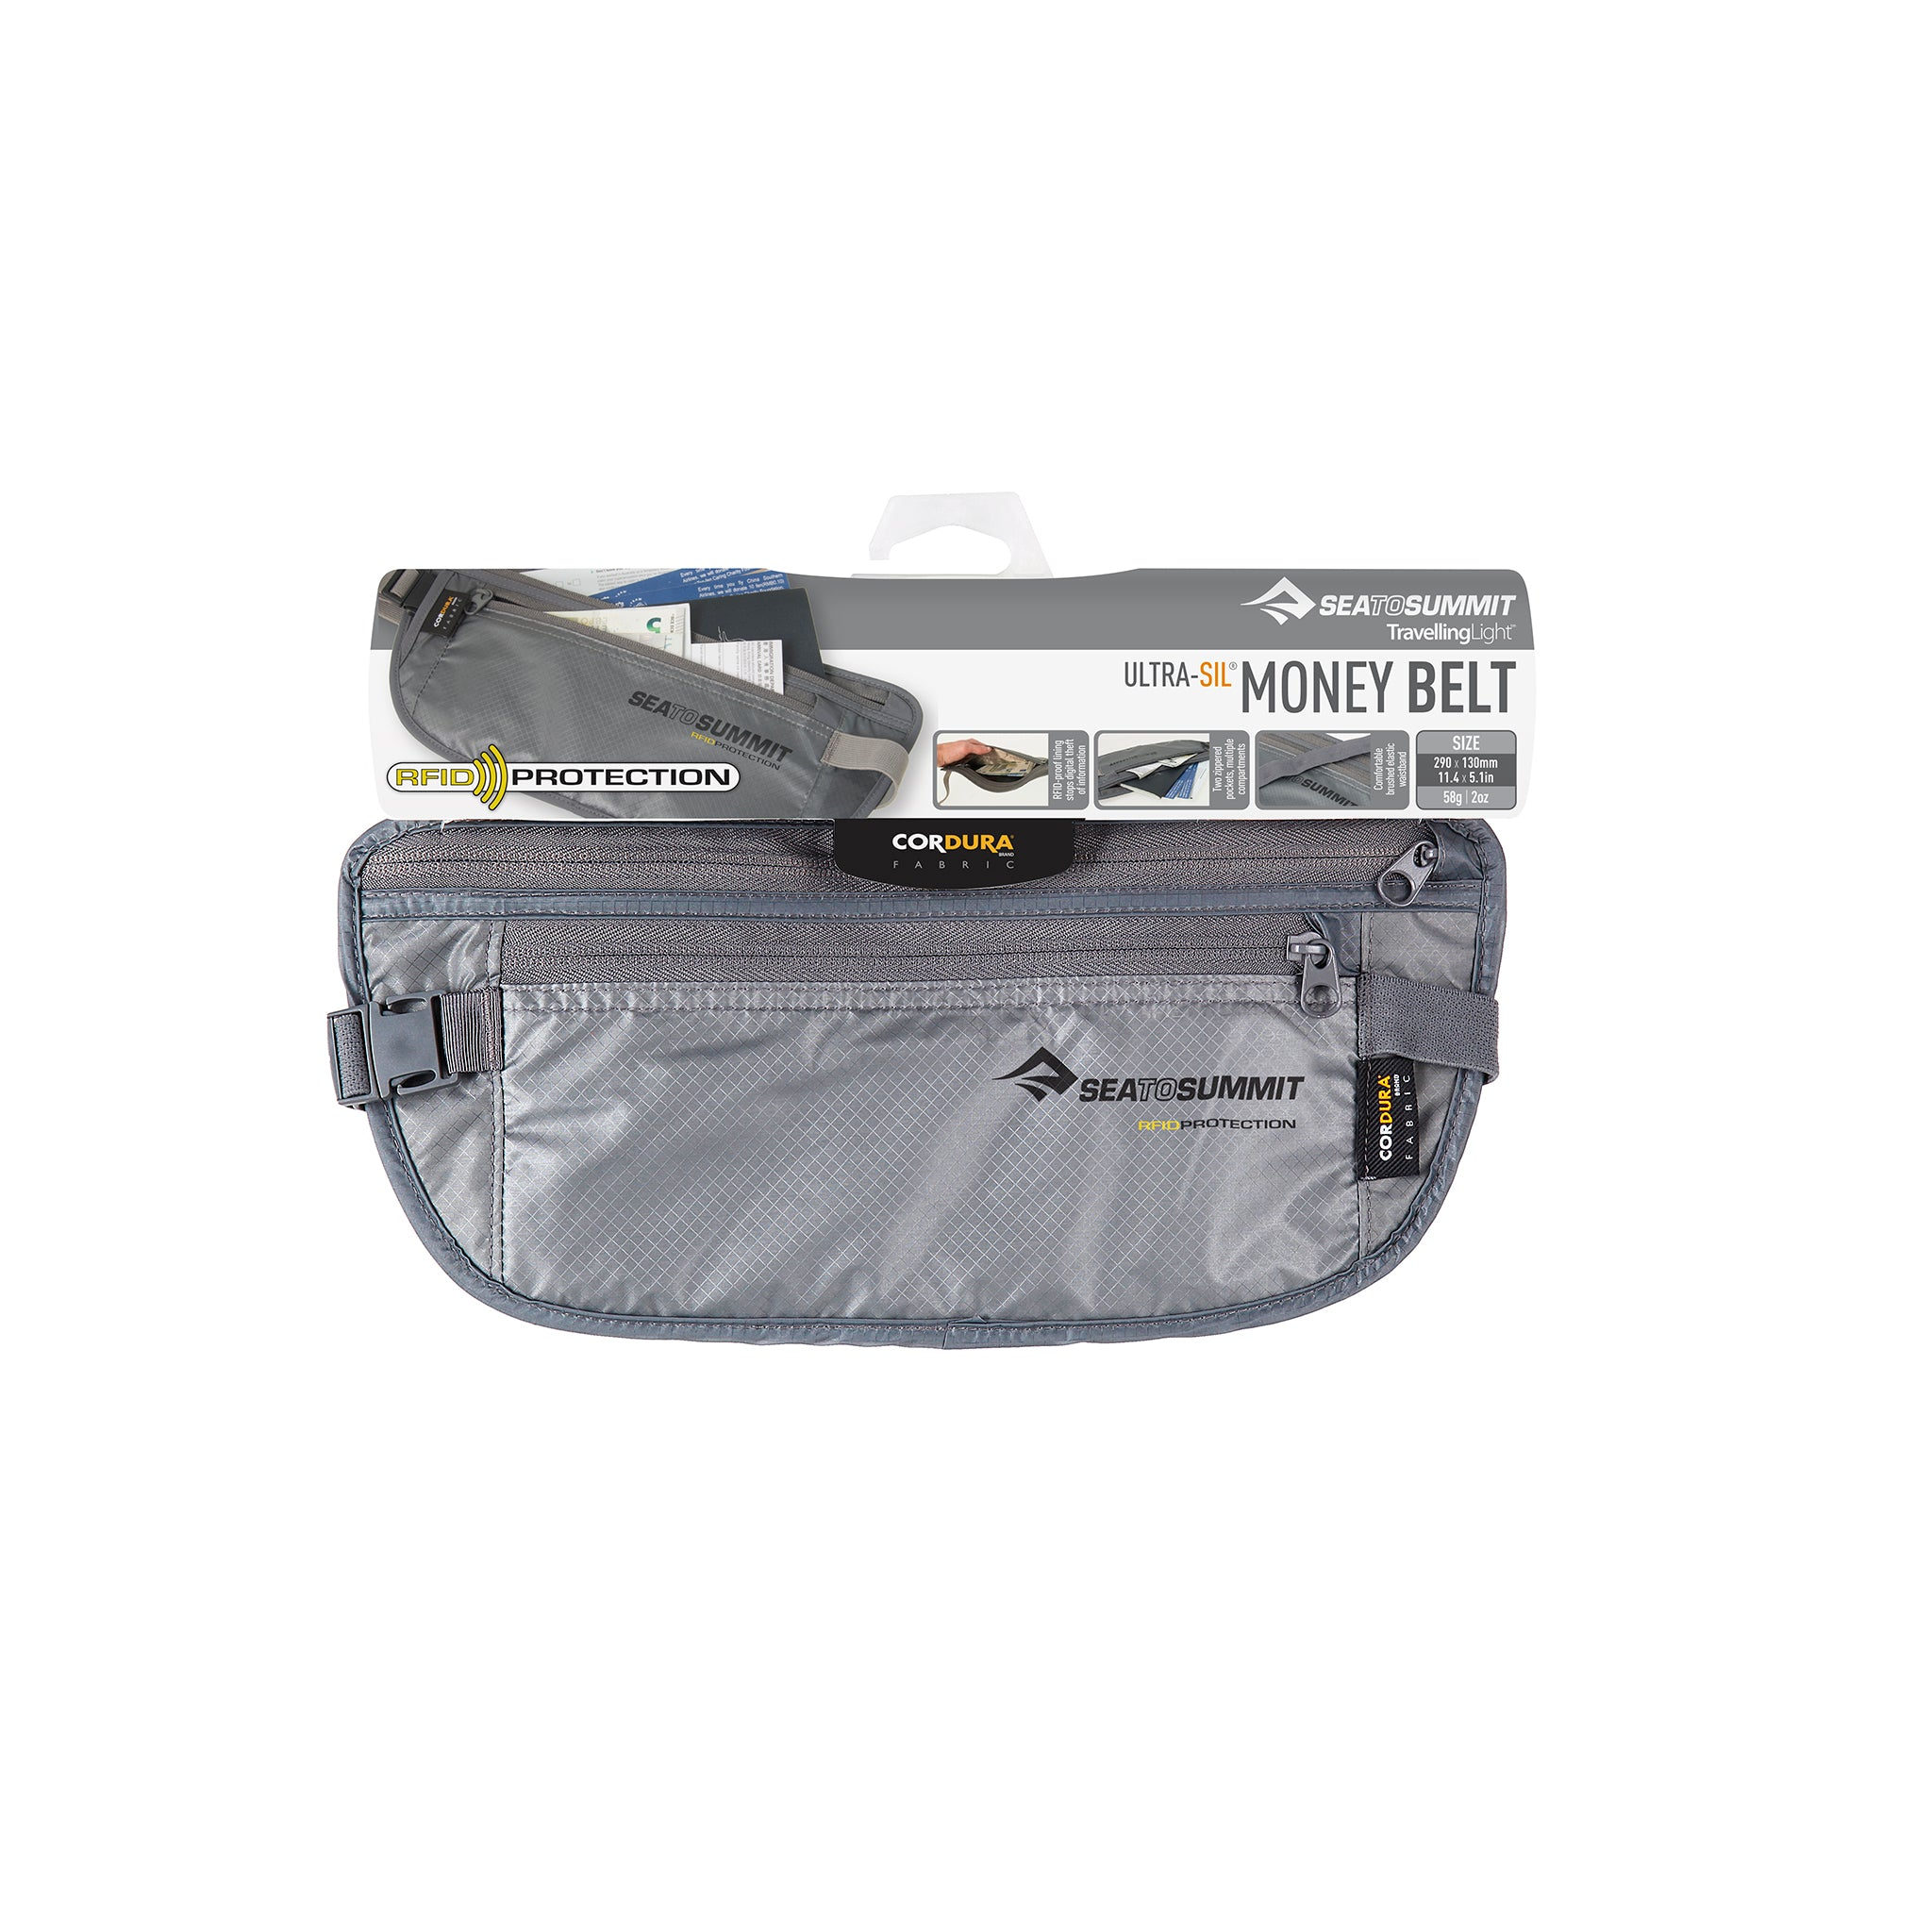 RFID Money Belt _ credit card protection